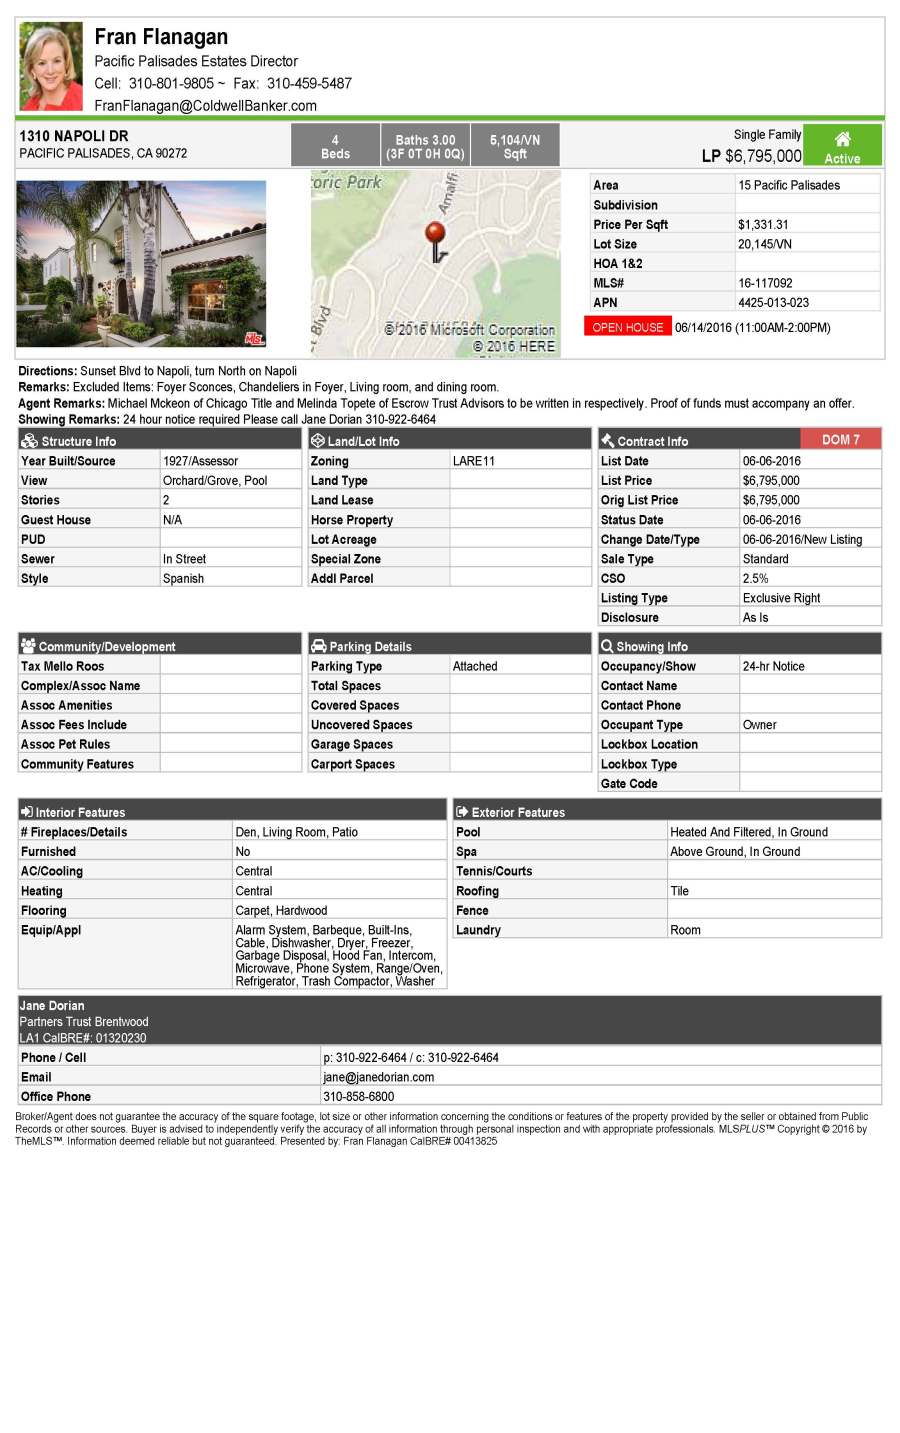 1310 Napoli Dr. MLS_Page_1